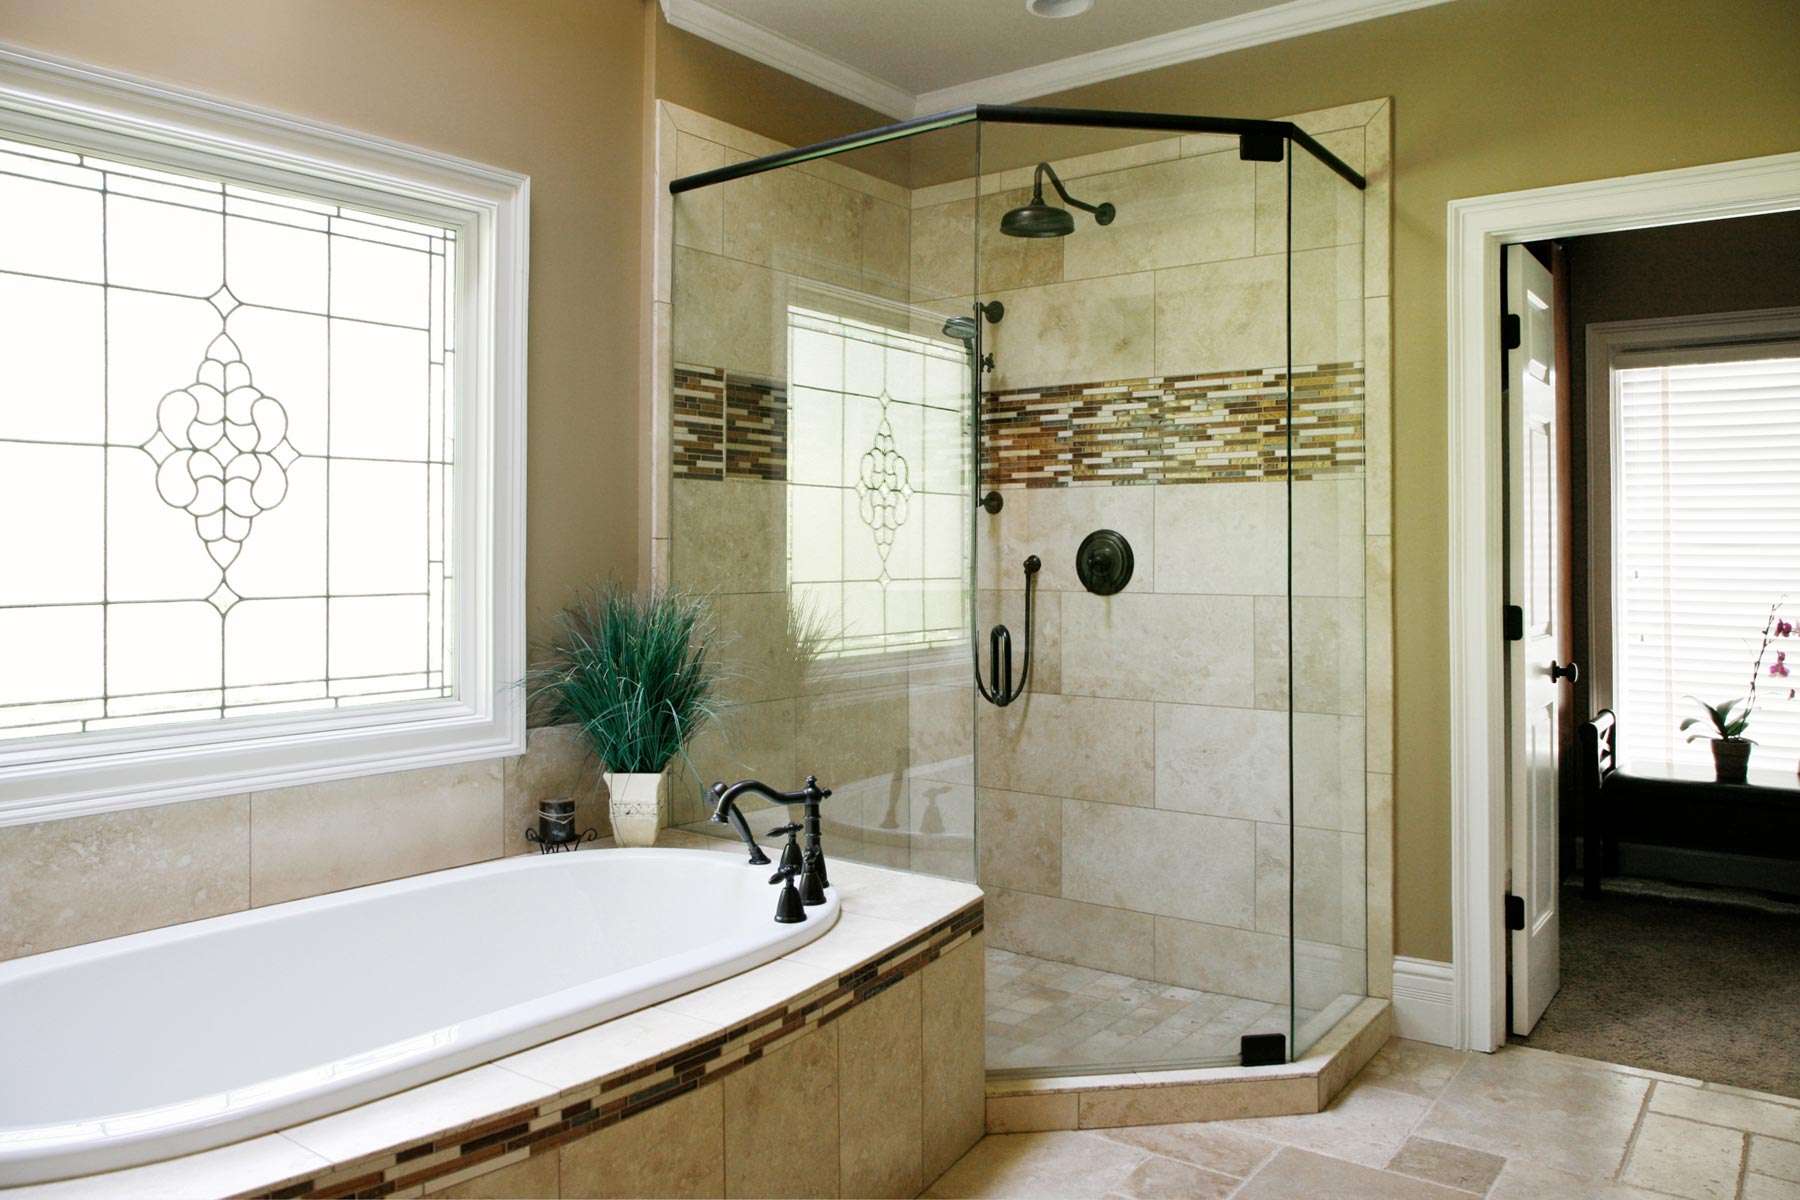 View of garden tub and shower with custom tile work